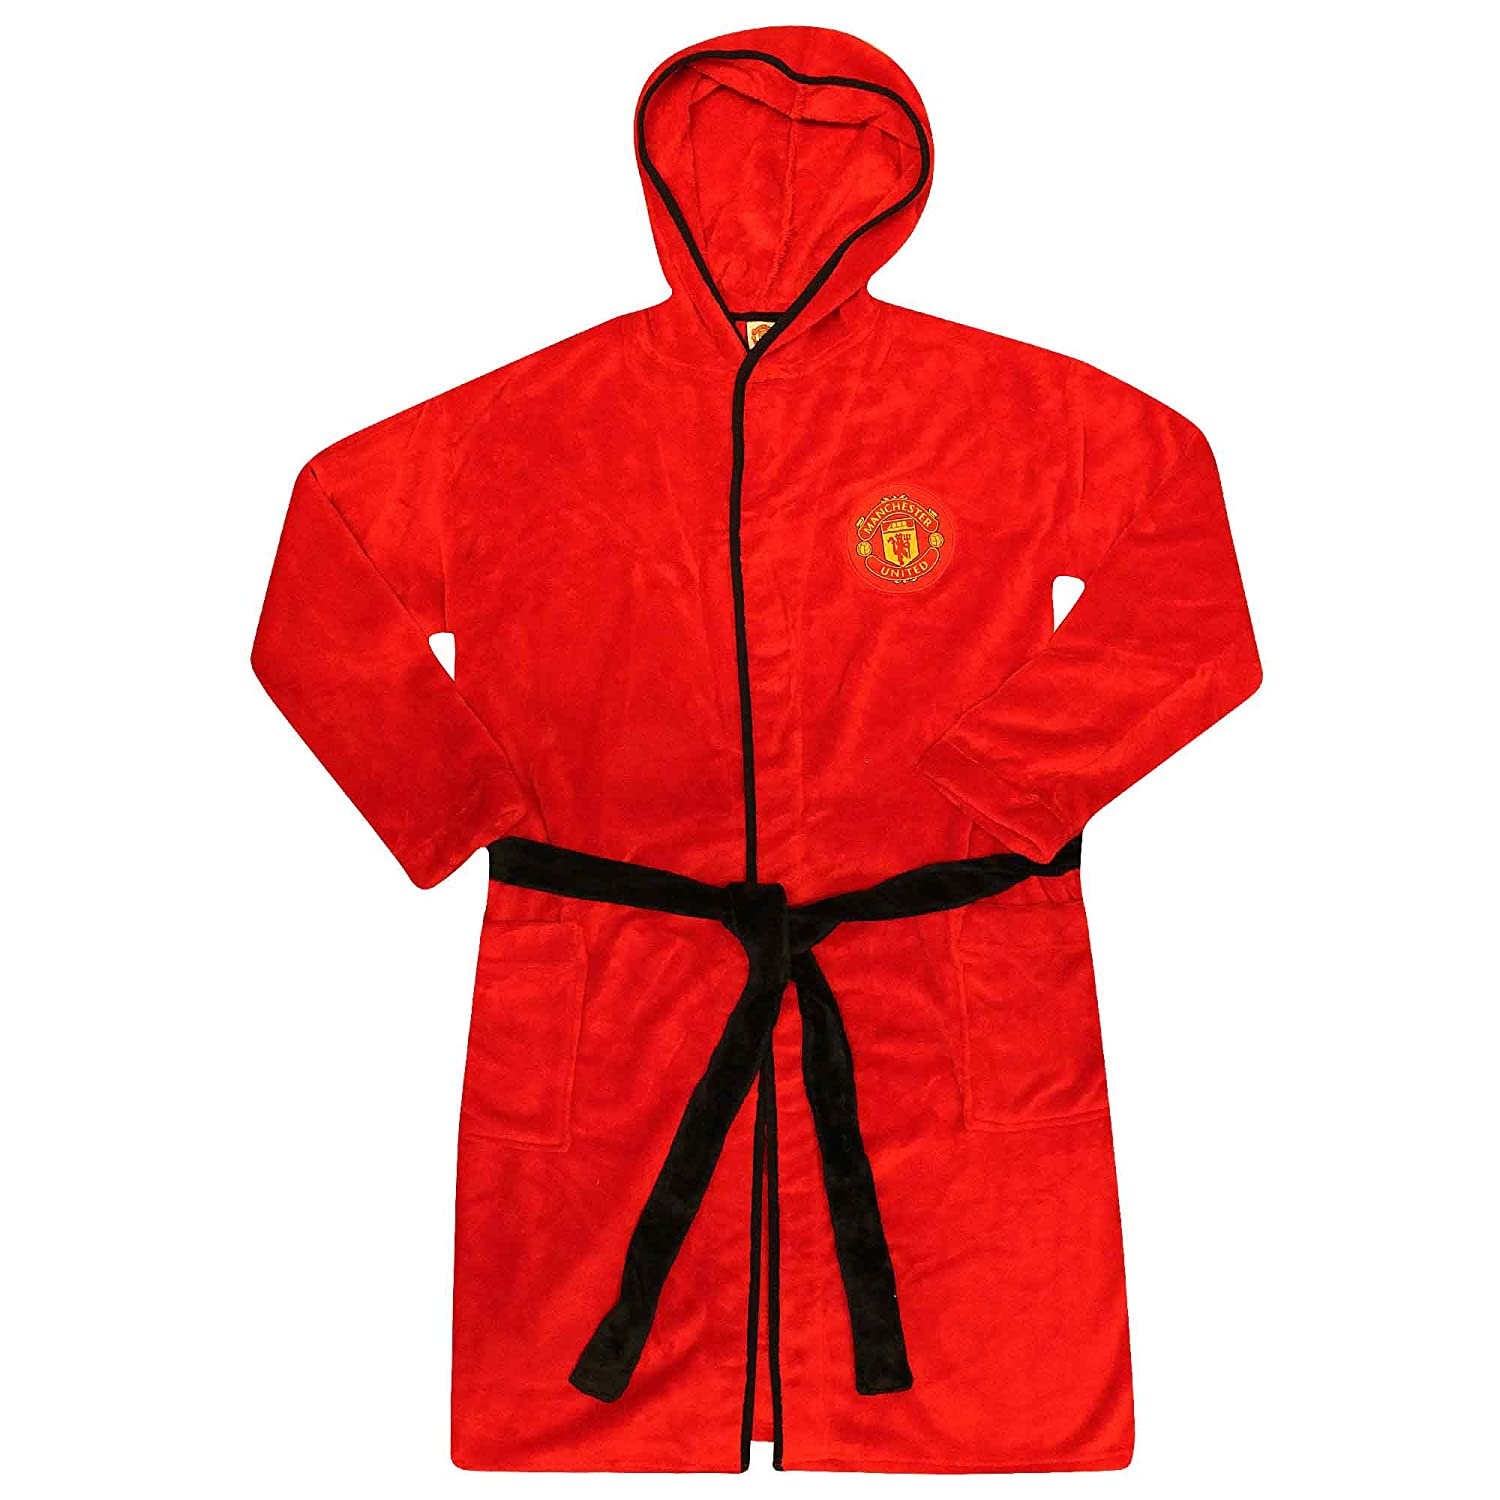 d234b0d21b Official Adults Manchester United Hooded Dressing Gown Bathrobe (100%  Polyester Fleece - Sizes S to XL) (MEDIUM)  Amazon.co.uk  Sports   Outdoors